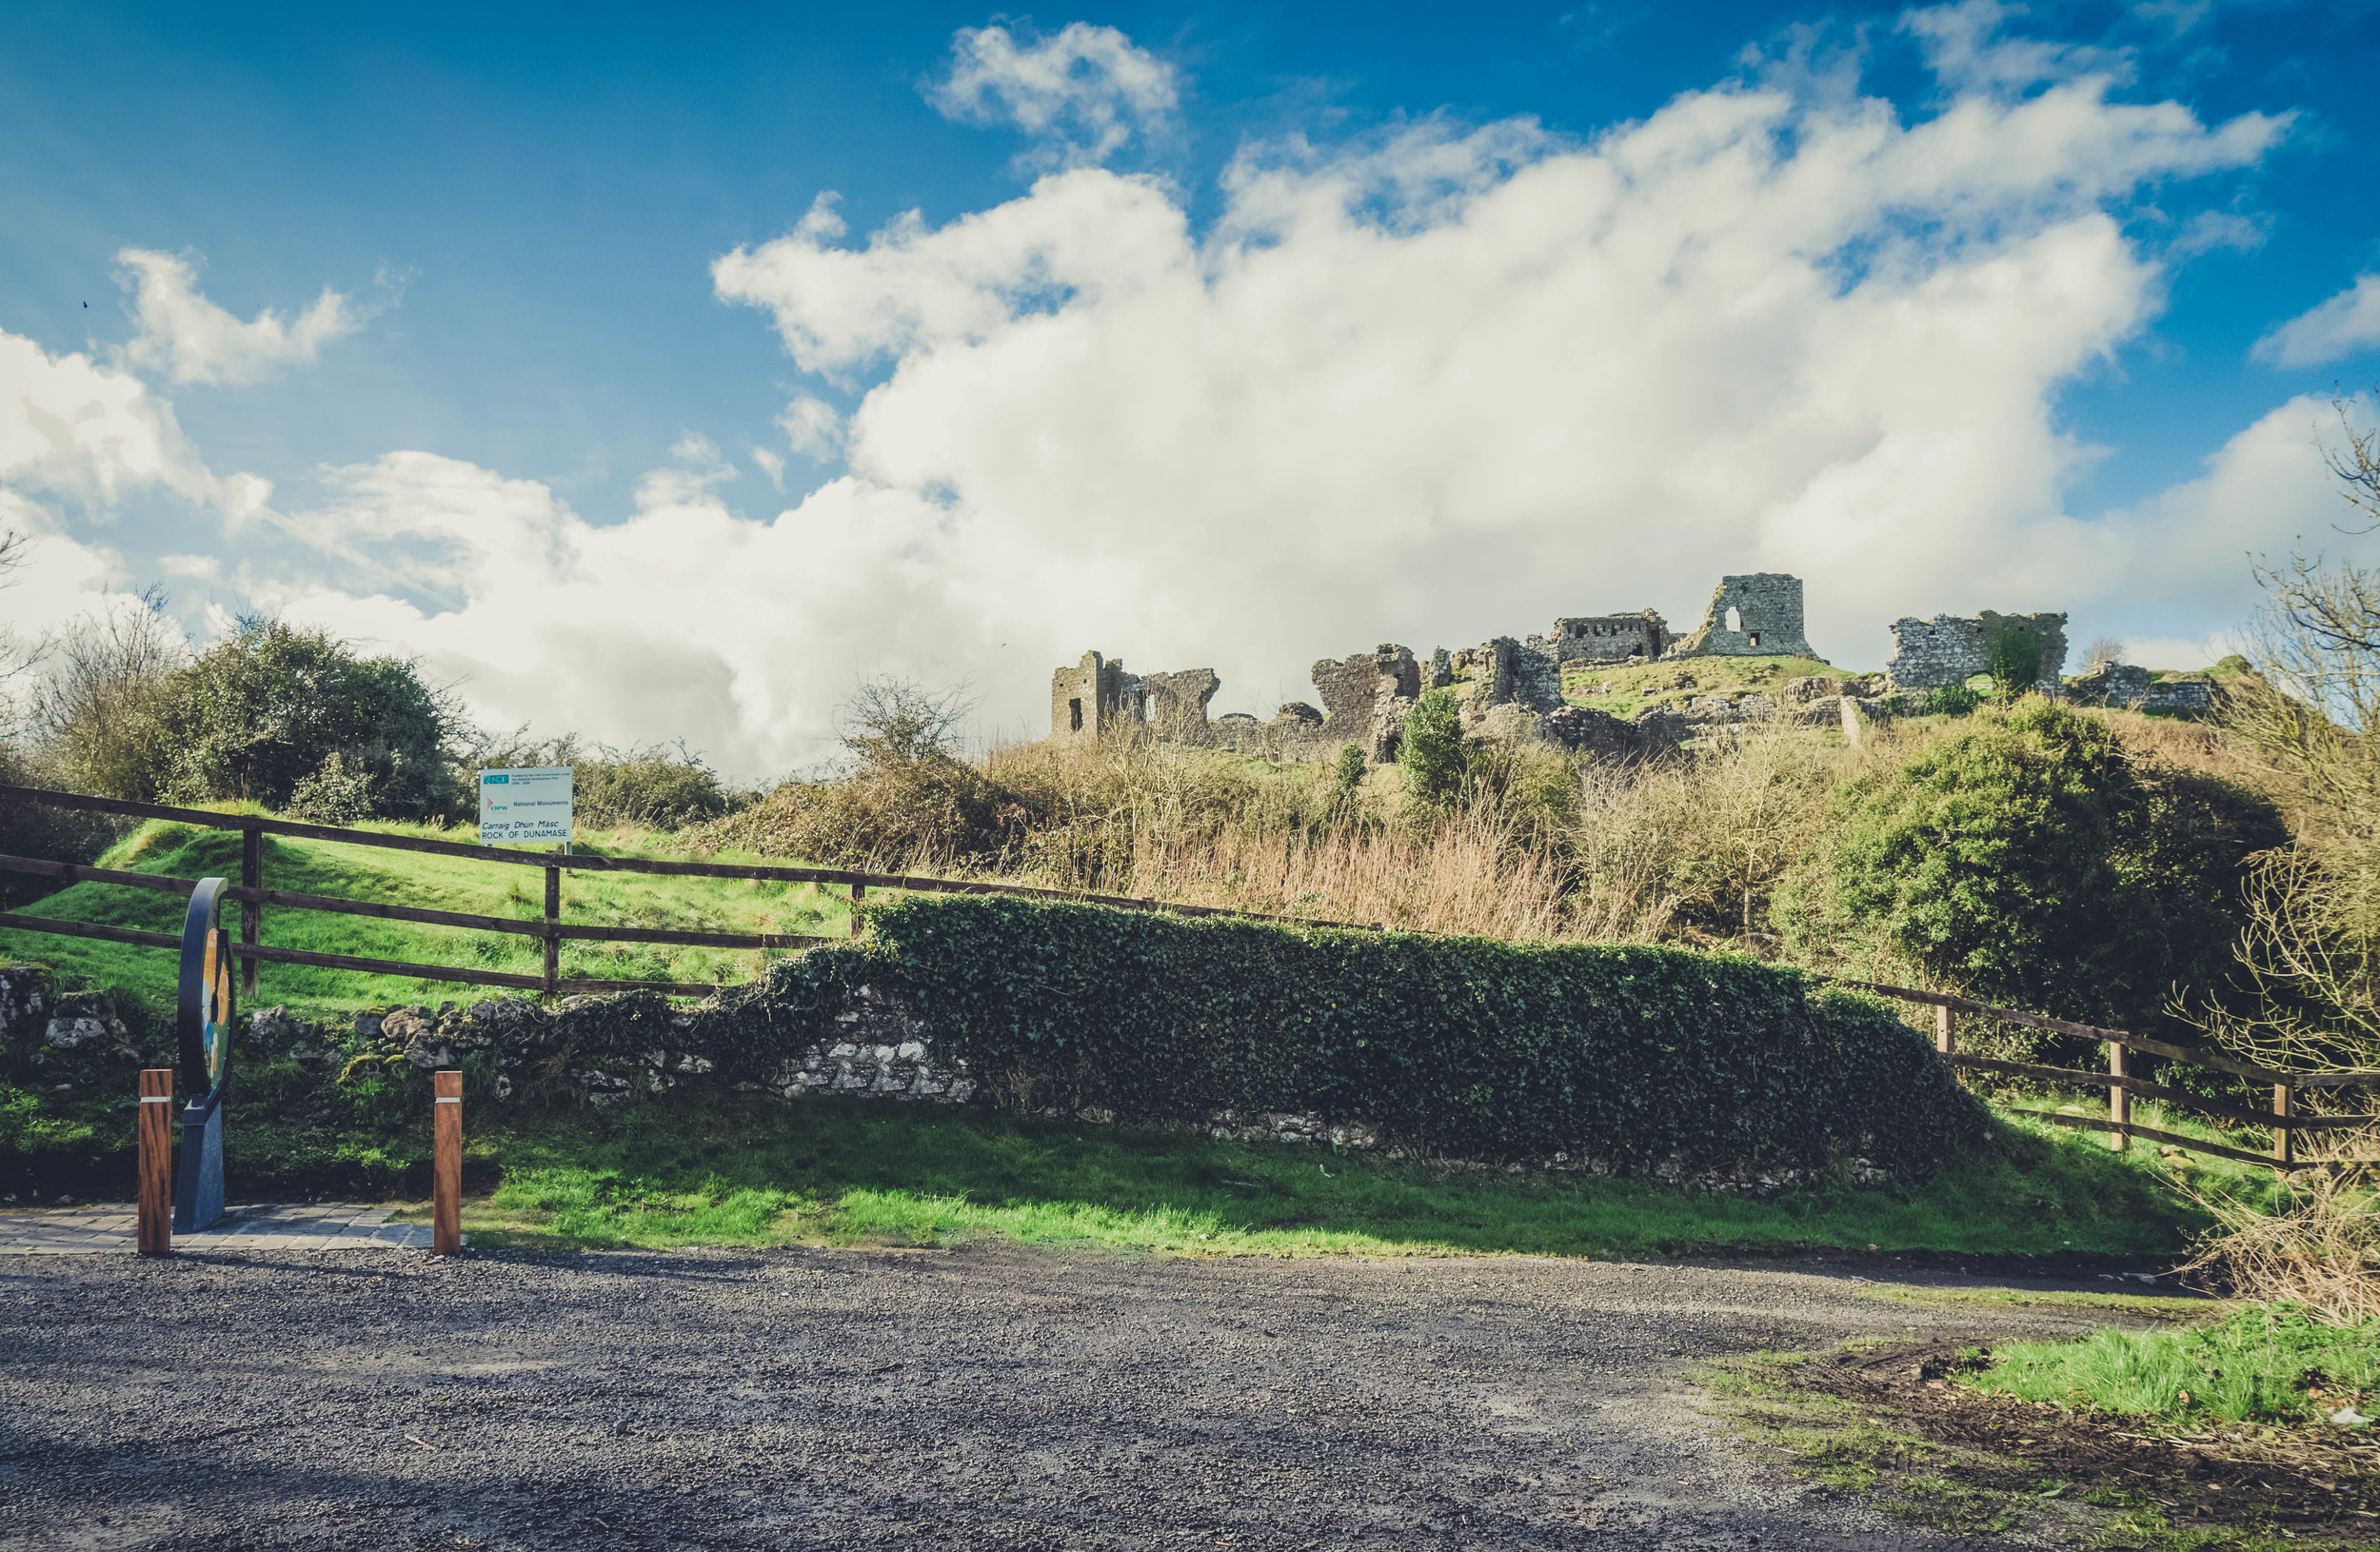 Ireland. Castle. Old castle. irish history. history. Rock of Dunamase. blue sky. rock. pathway. adventure. travel. irish counrty. green fields. castle view and path.jpg